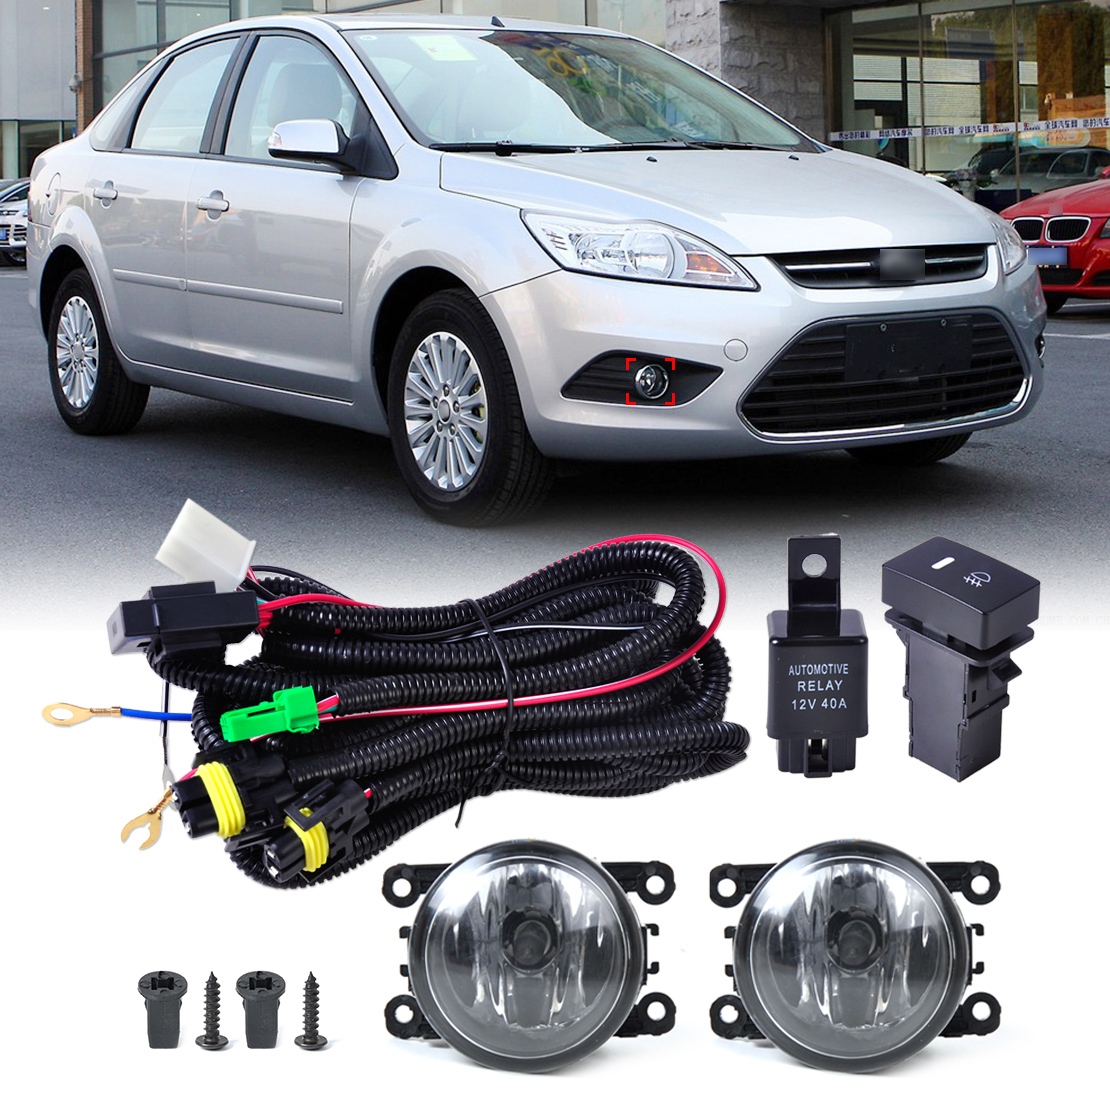 beler New Wiring Harness Sockets + Switch + 2 Fog Lights H11 Lamp 12V 55W 4F9Z-15200-AA Kit for Ford Mustang Lincoln Subaru for holden commodore saloon vz h11 wiring harness sockets wire connector switch 2 fog lights drl front bumper led lamp